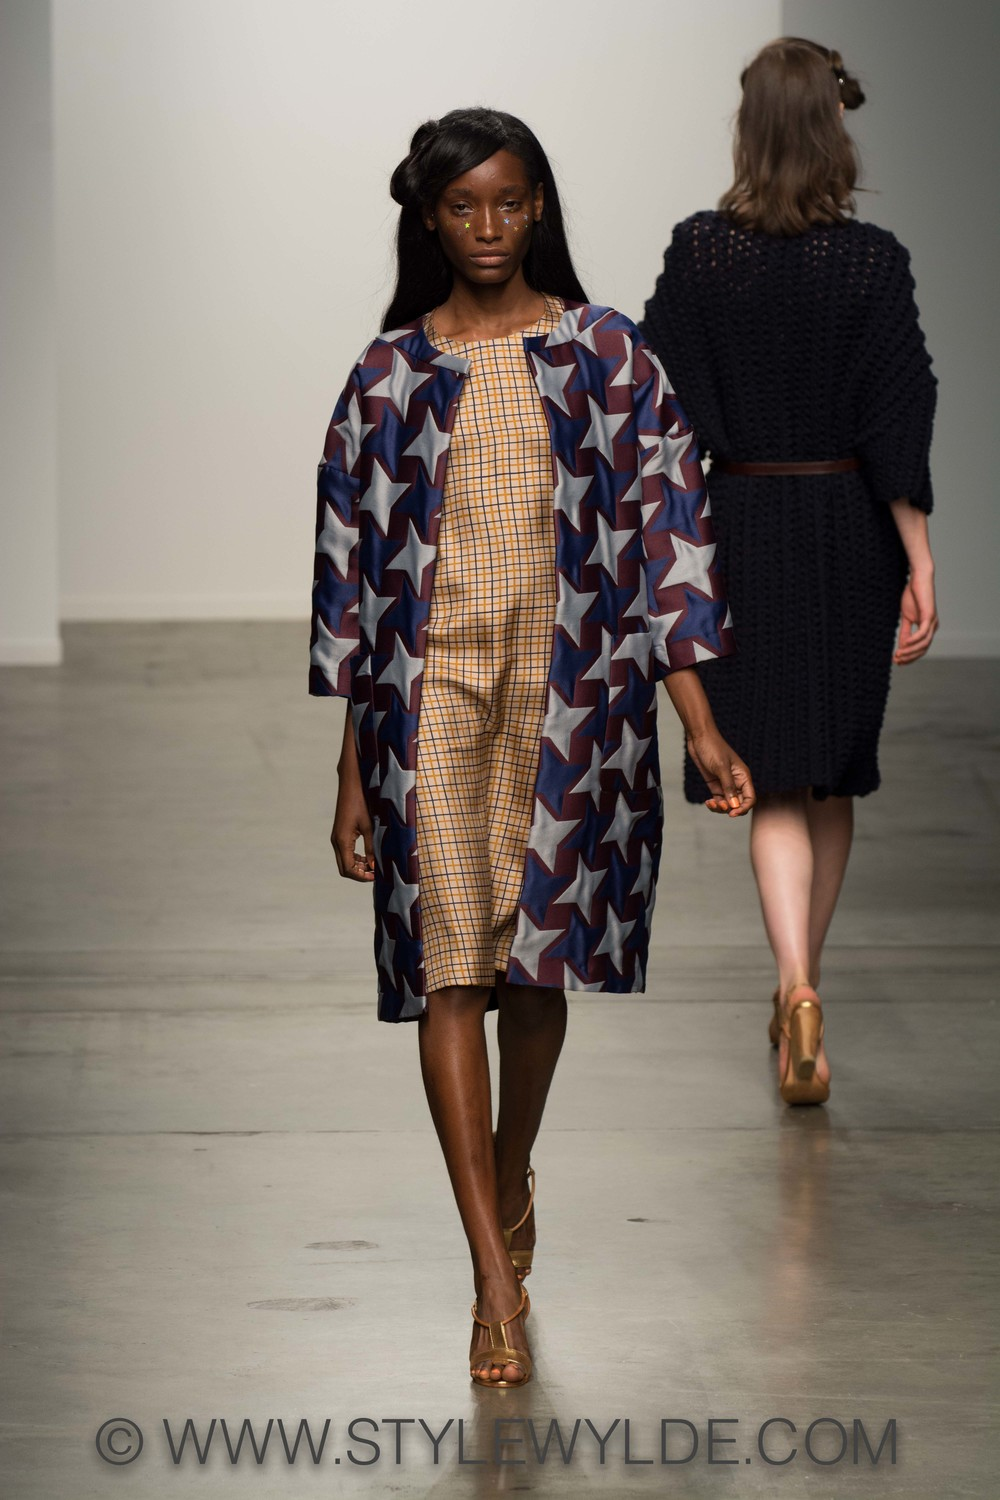 StyleWylde_adetacher_FOH_SS15_sw (33 of 37).jpg